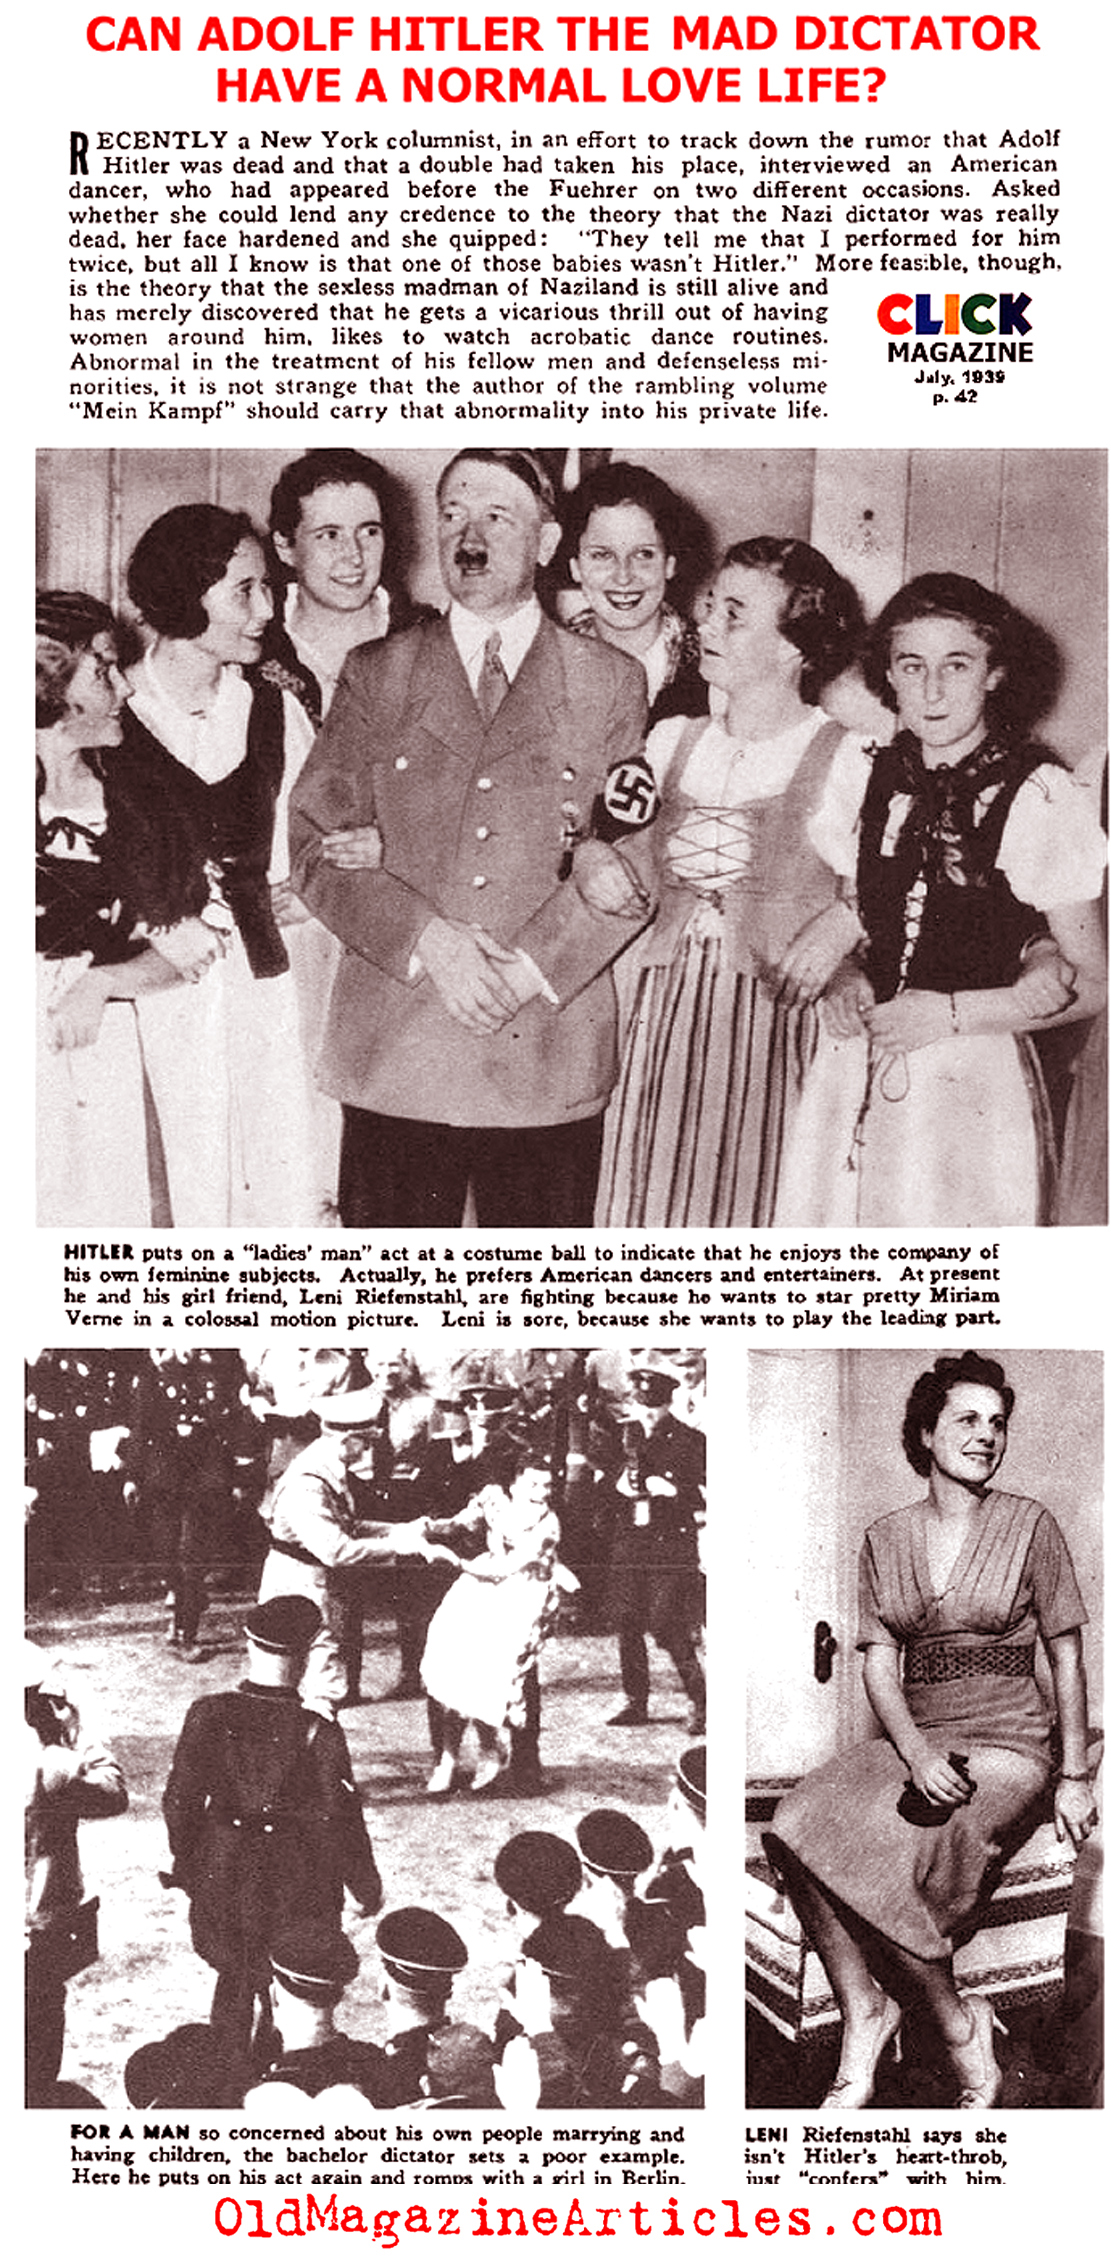 Adolf Hitler and Women  (Click Magazine, 1939)